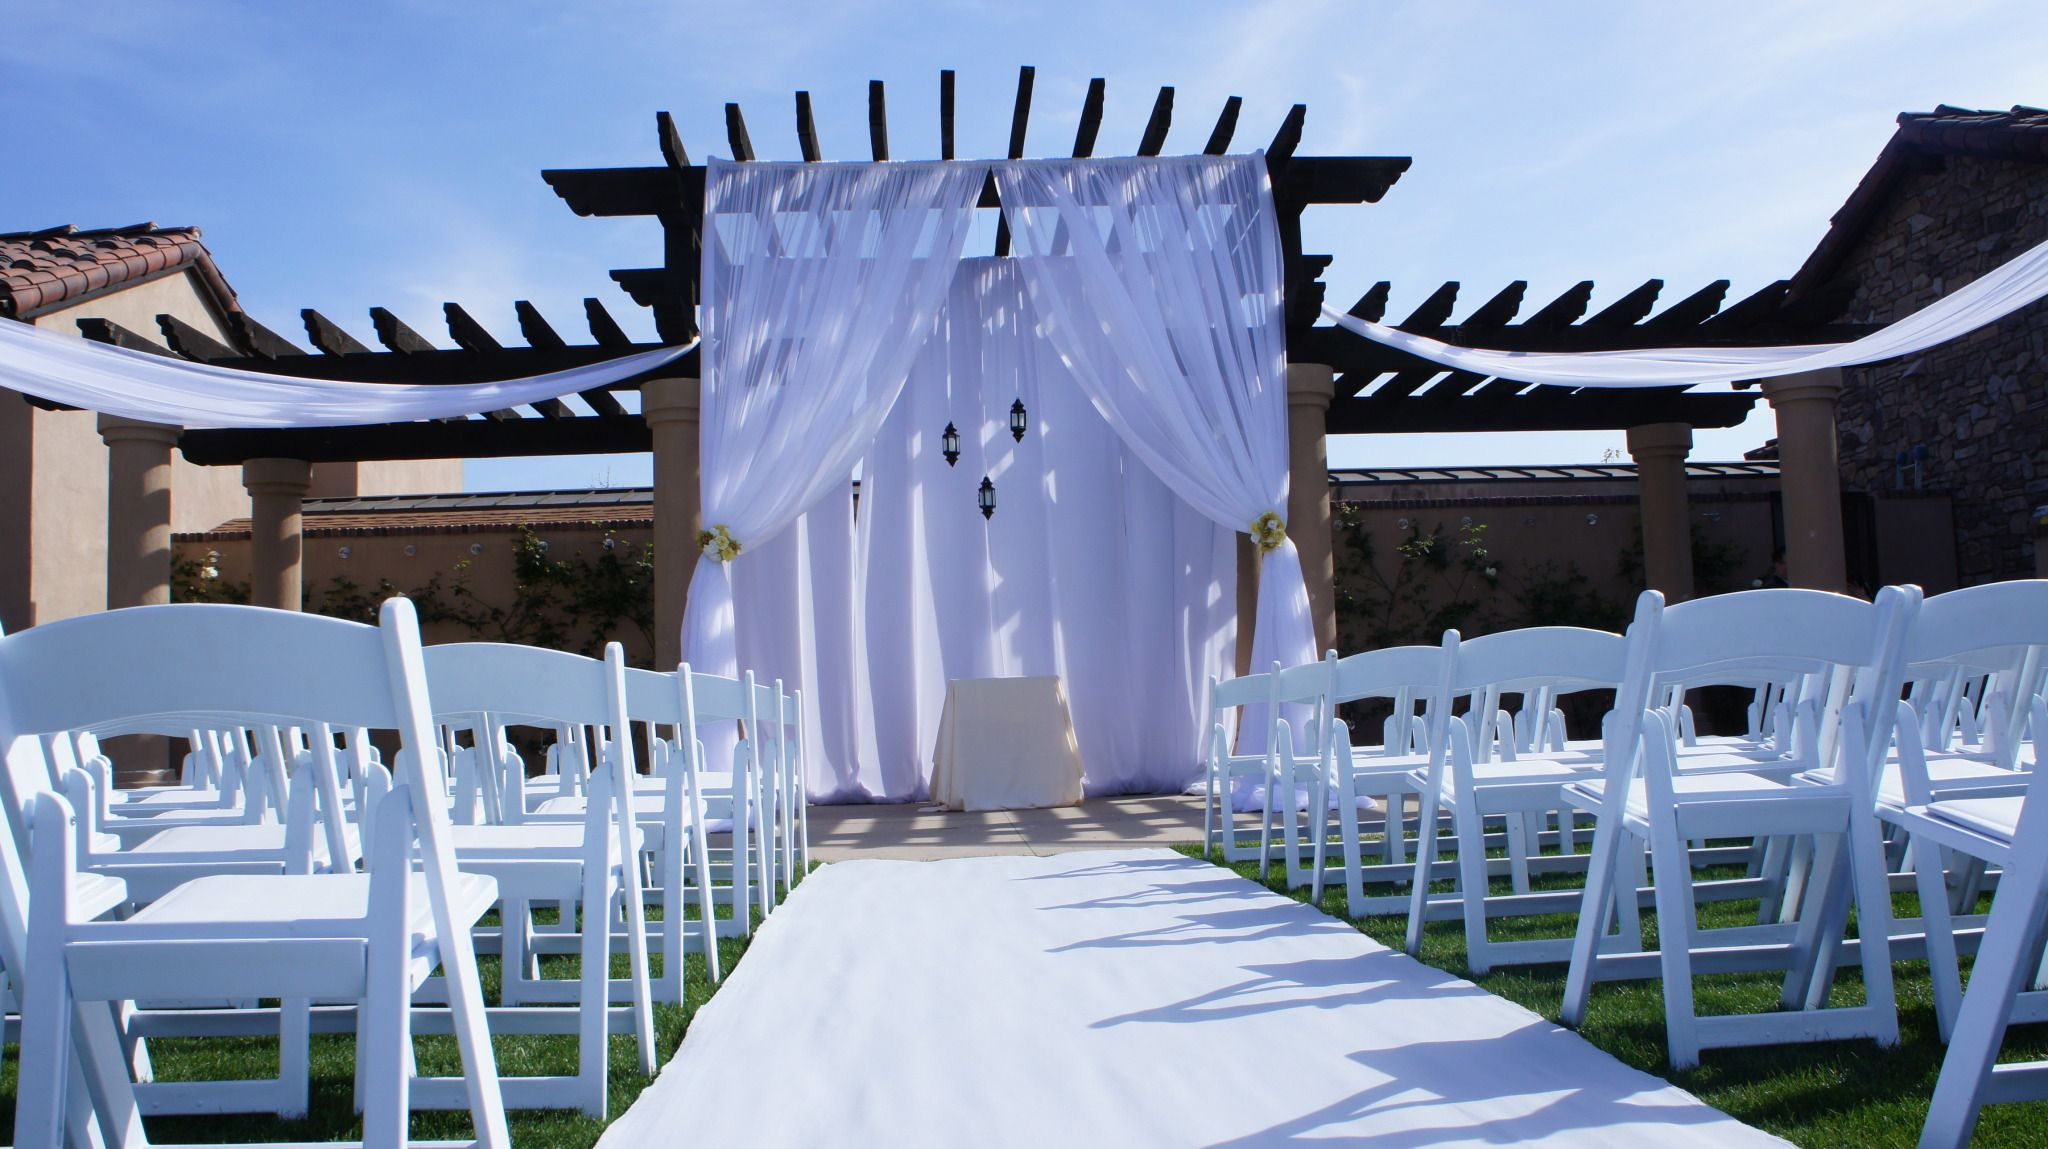 backyard wedding venues in orange county ca%0A Beautiful Orange County wedding venue in Aliso Viejo with an indoor banquet  hall and outdoor patio for cocktail hour